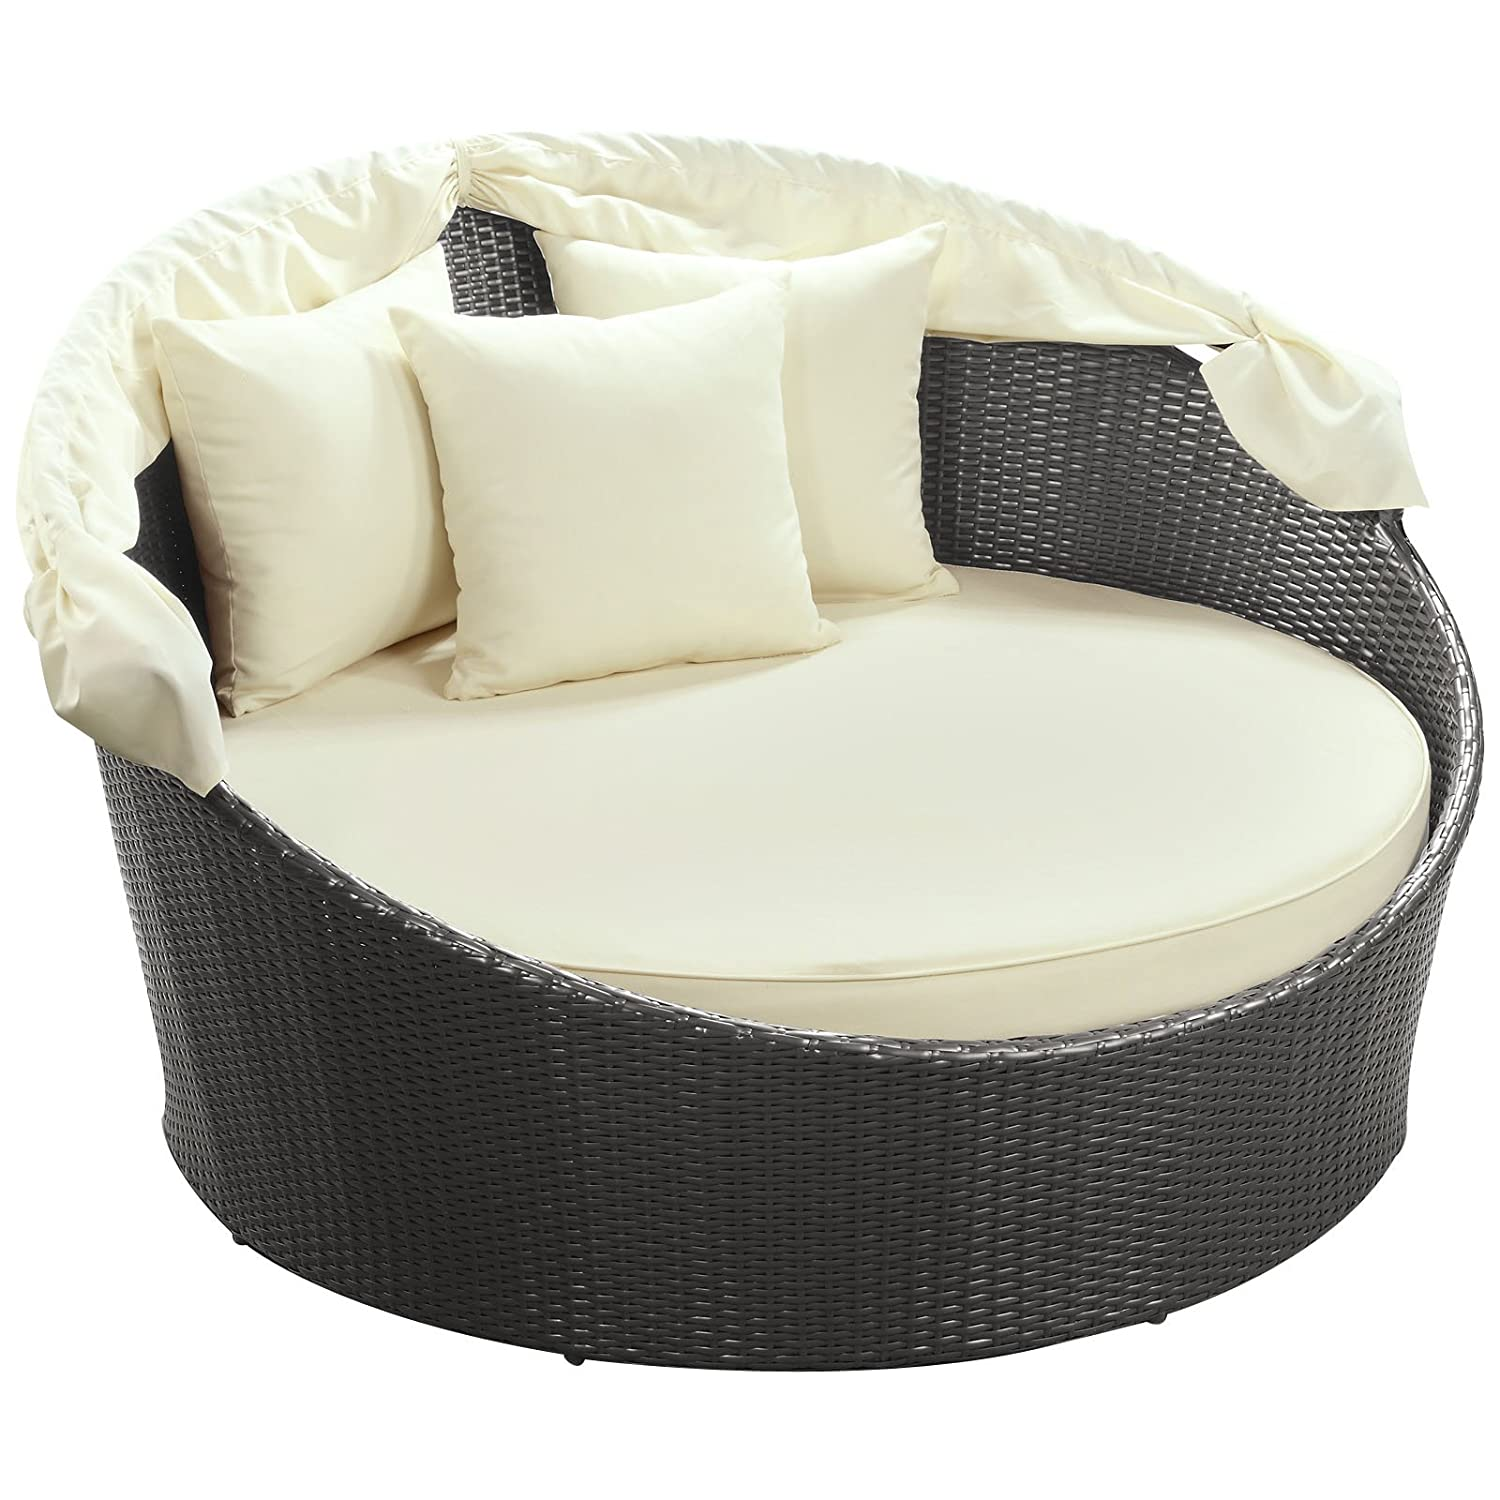 Amazon.com : Modway Siesta Outdoor Wicker Patio Canopy Bed In Espresso With  White Cushions : Patio Furniture Cushions : Garden U0026 Outdoor